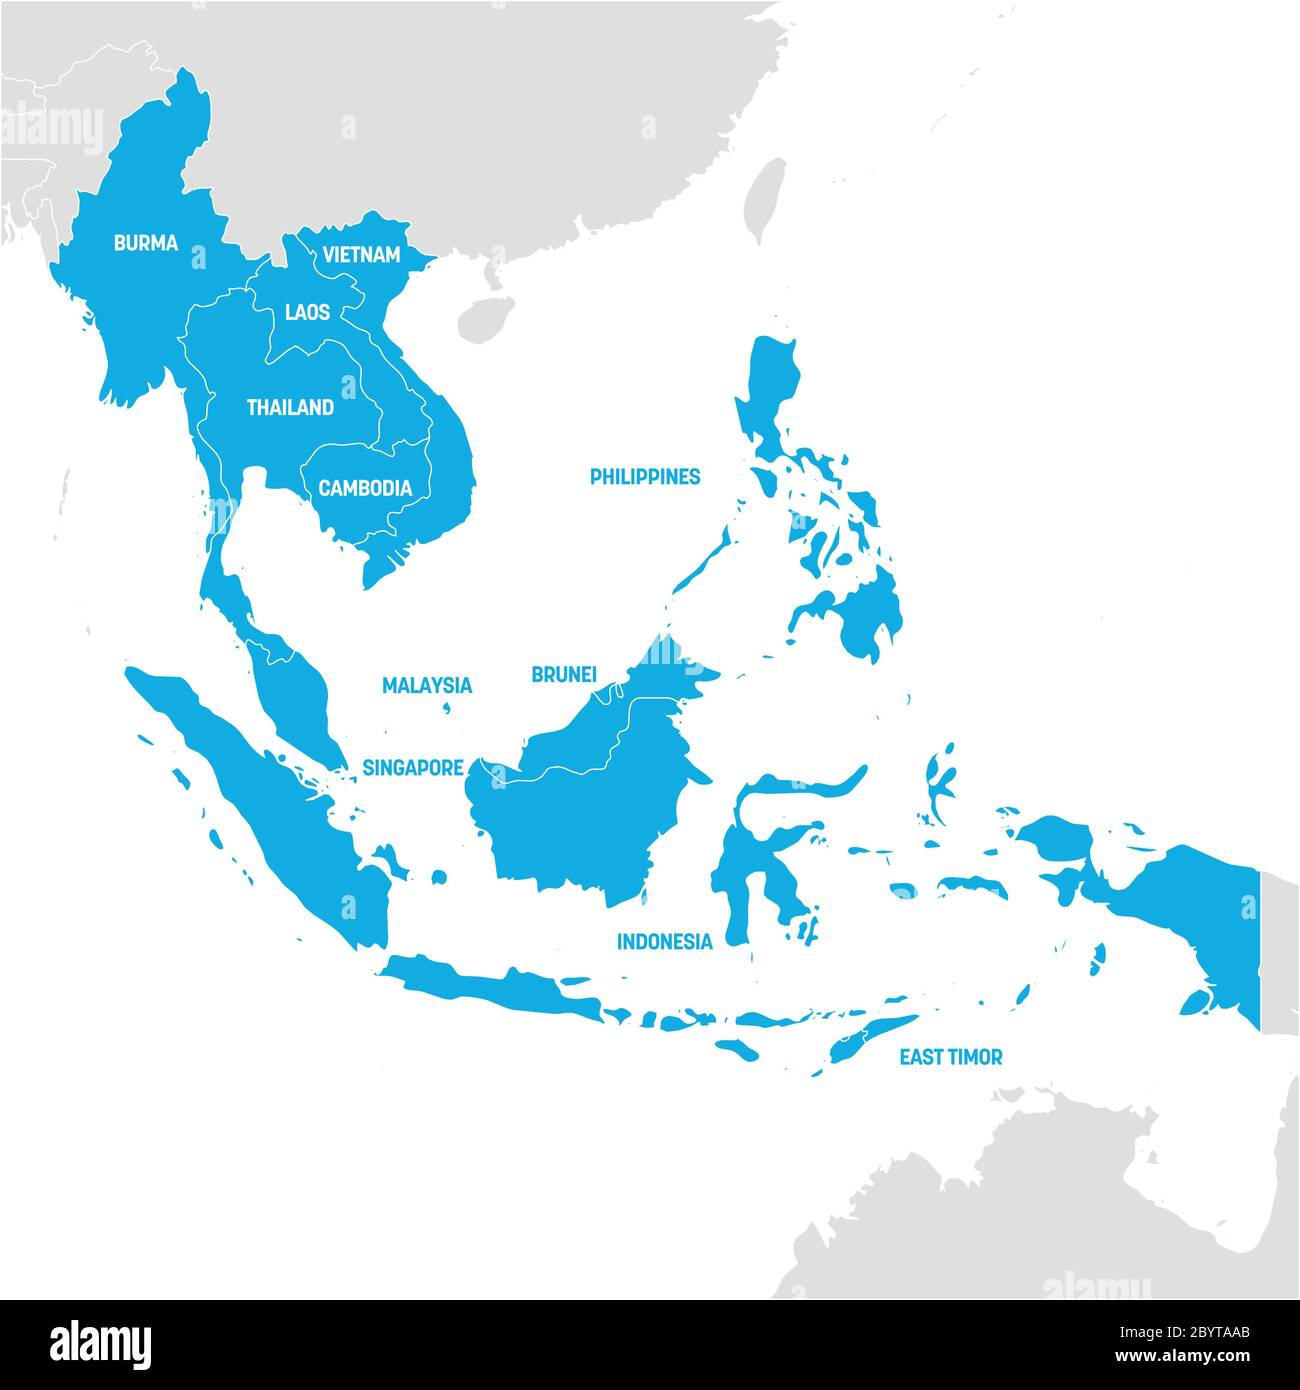 Picture of: Southeast Asia Region Map Of Countries In Southeastern Asia Vector Illustration Stock Vector Image Art Alamy